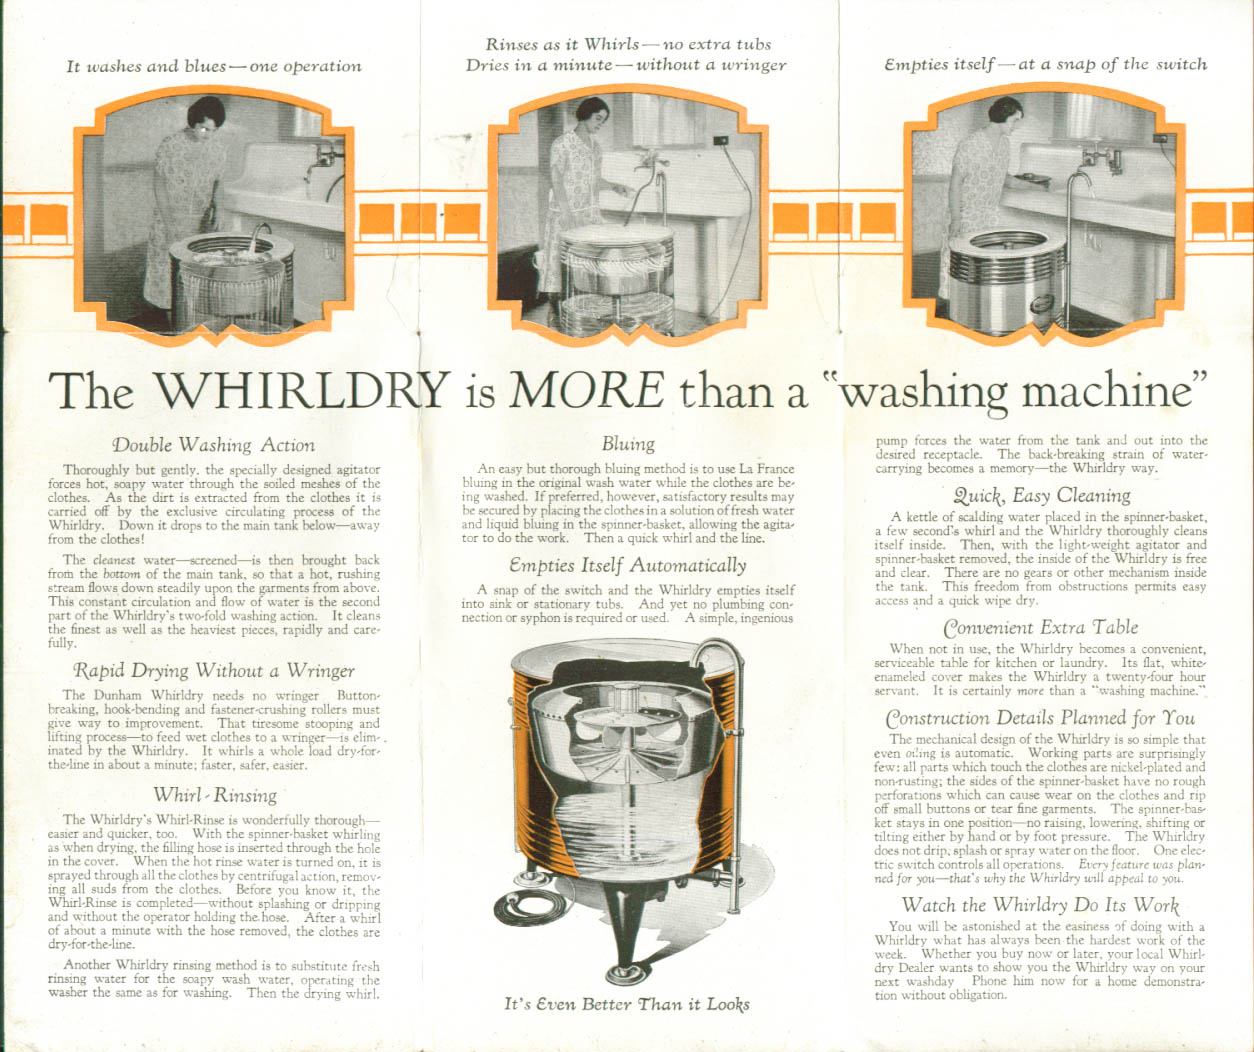 Whirldry Washing Machine folder Dunham Utica NY 1926